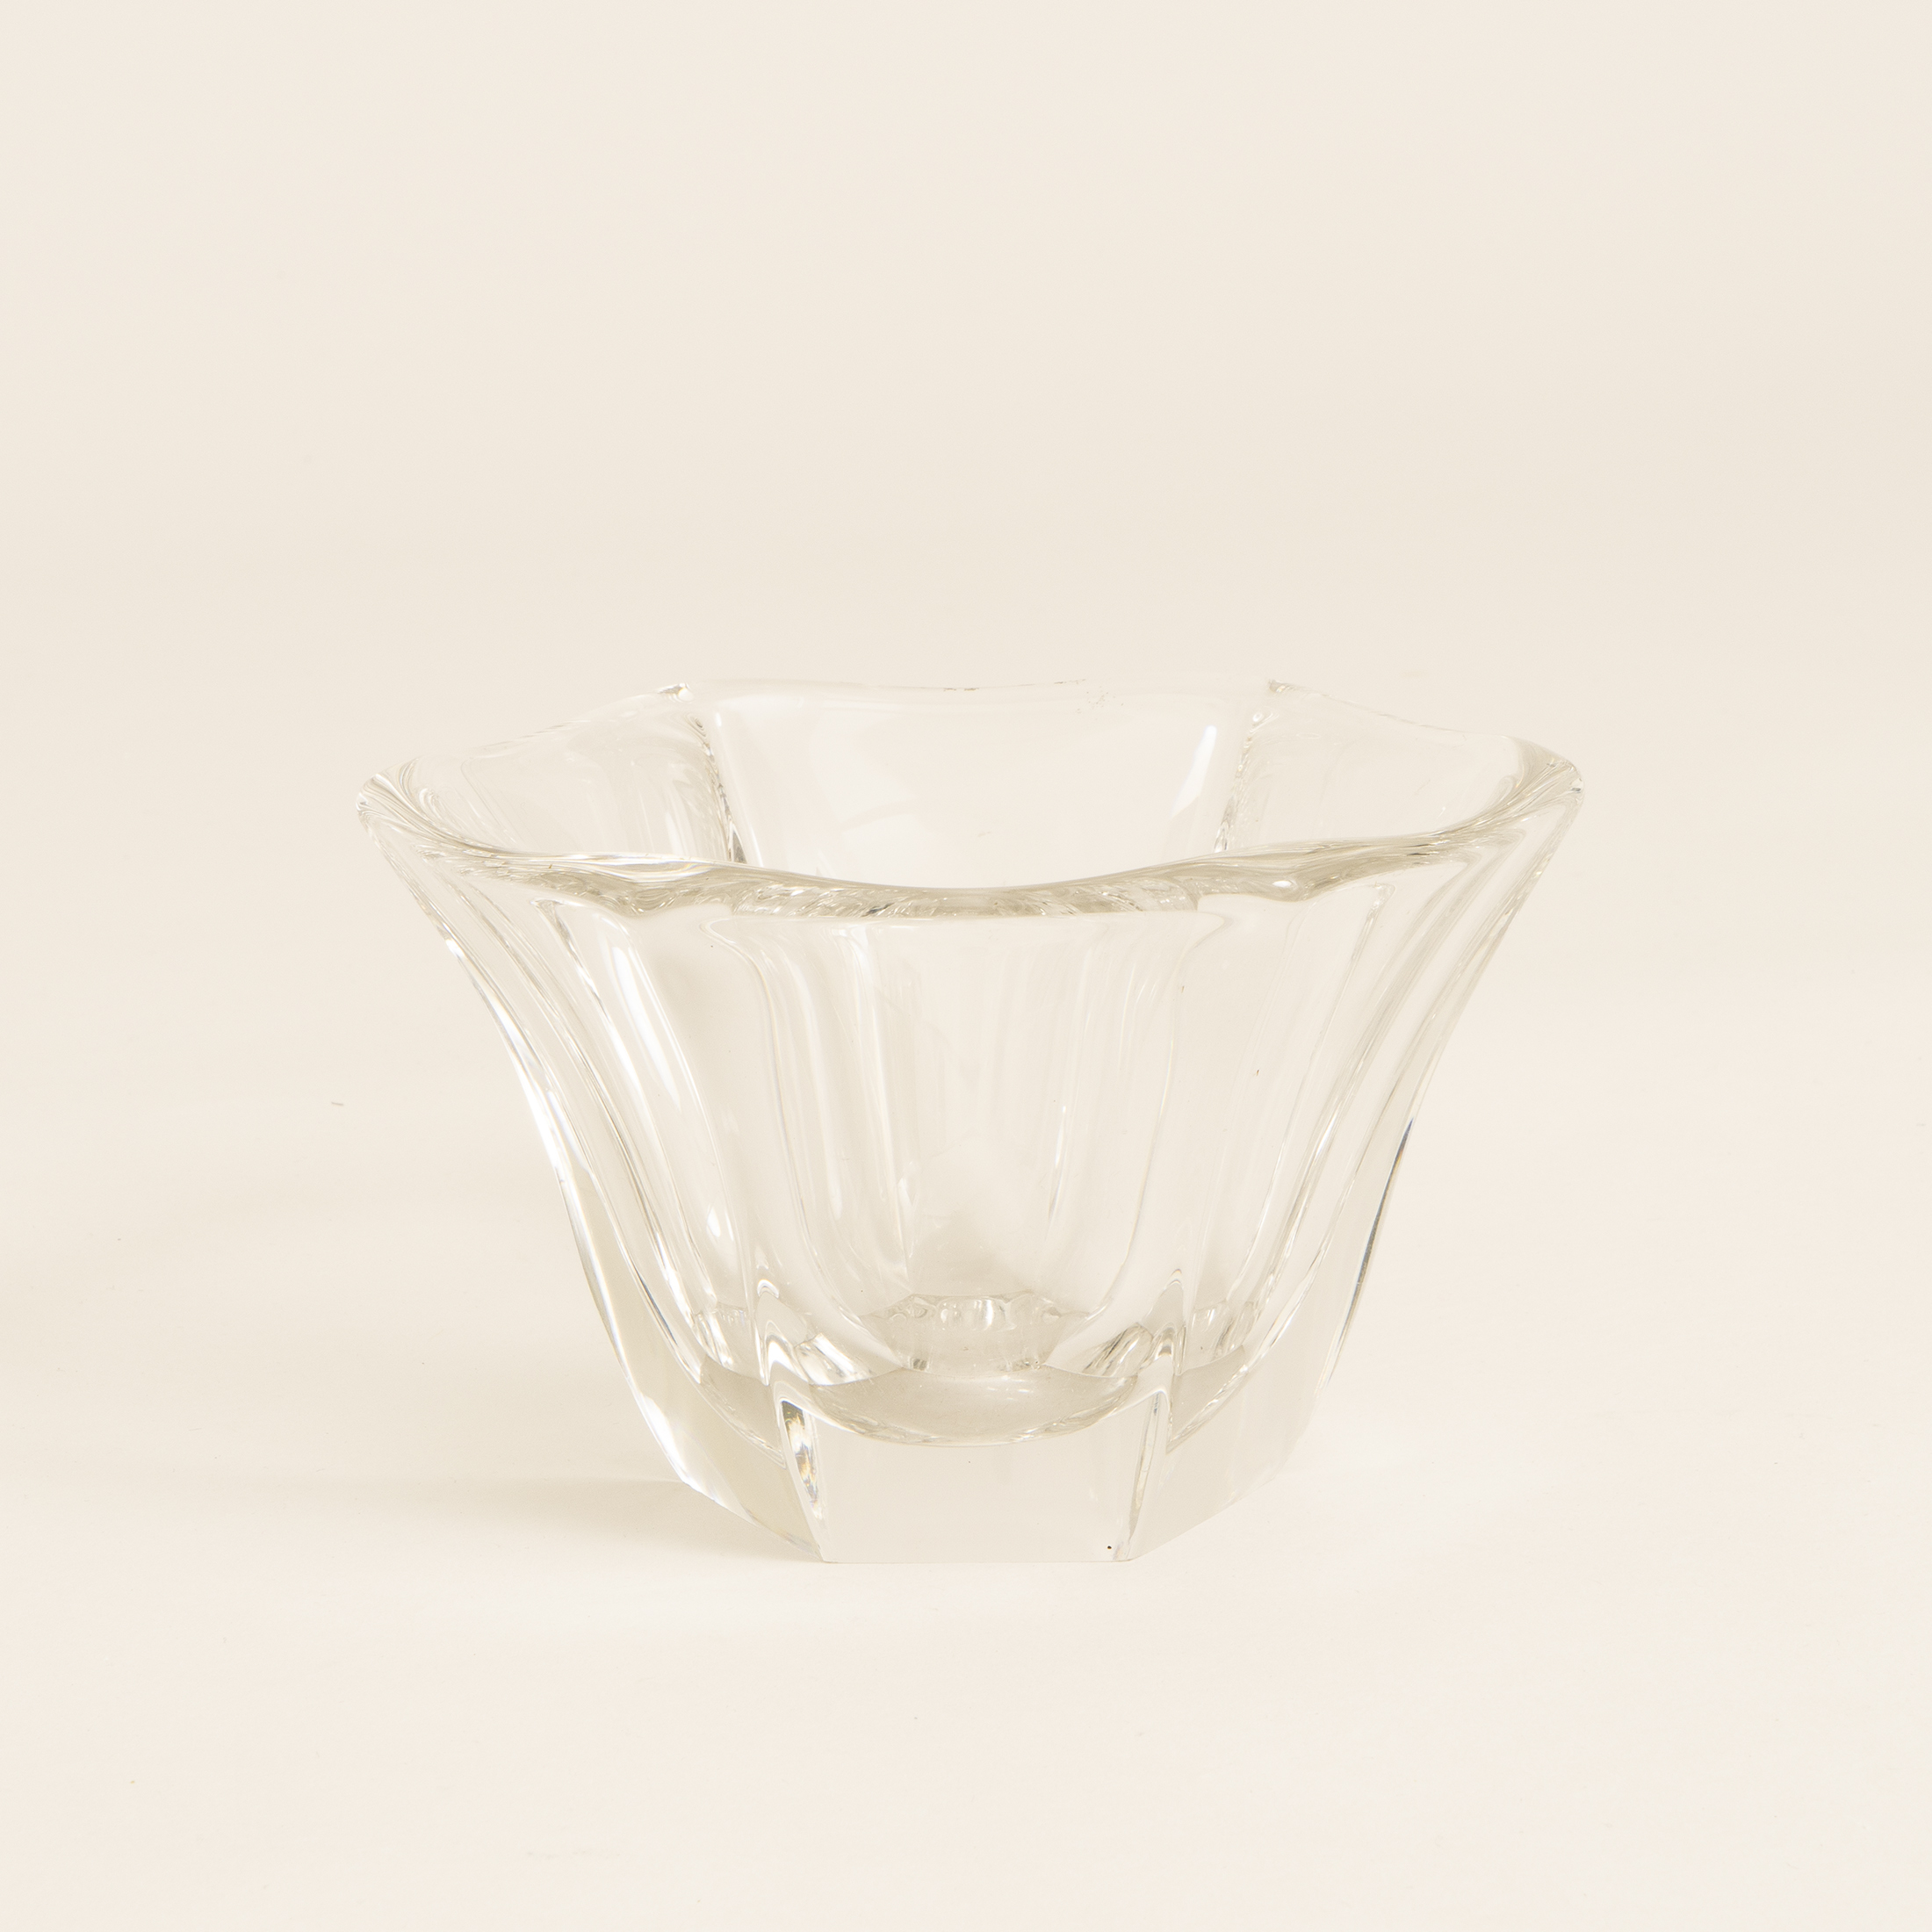 The image for Scandinavian Wide Glass Vase 0309